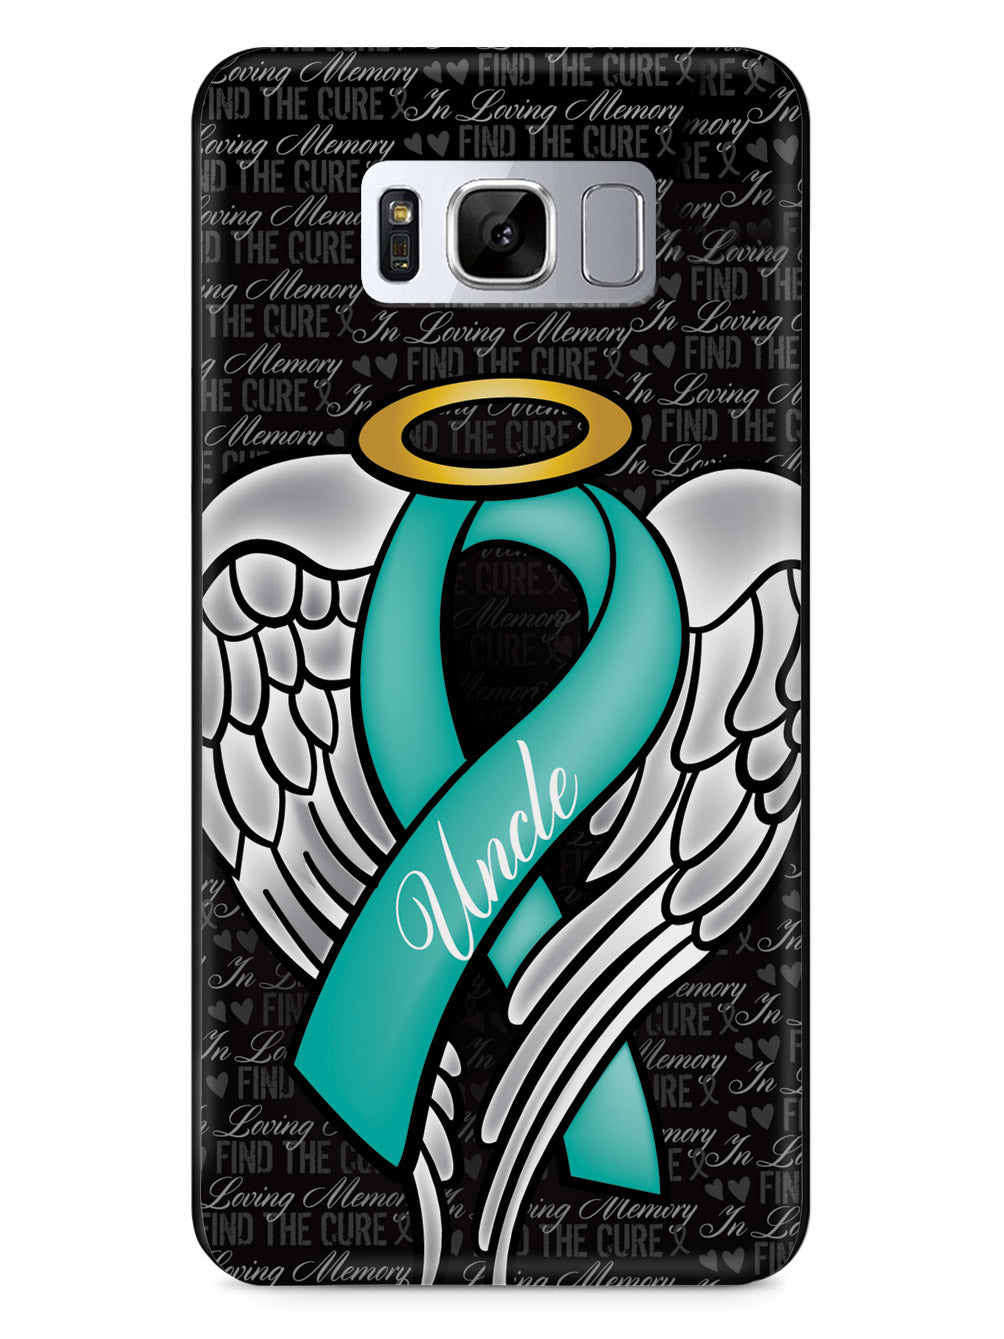 In Loving Memory of My Uncle - Teal Ribbon Case